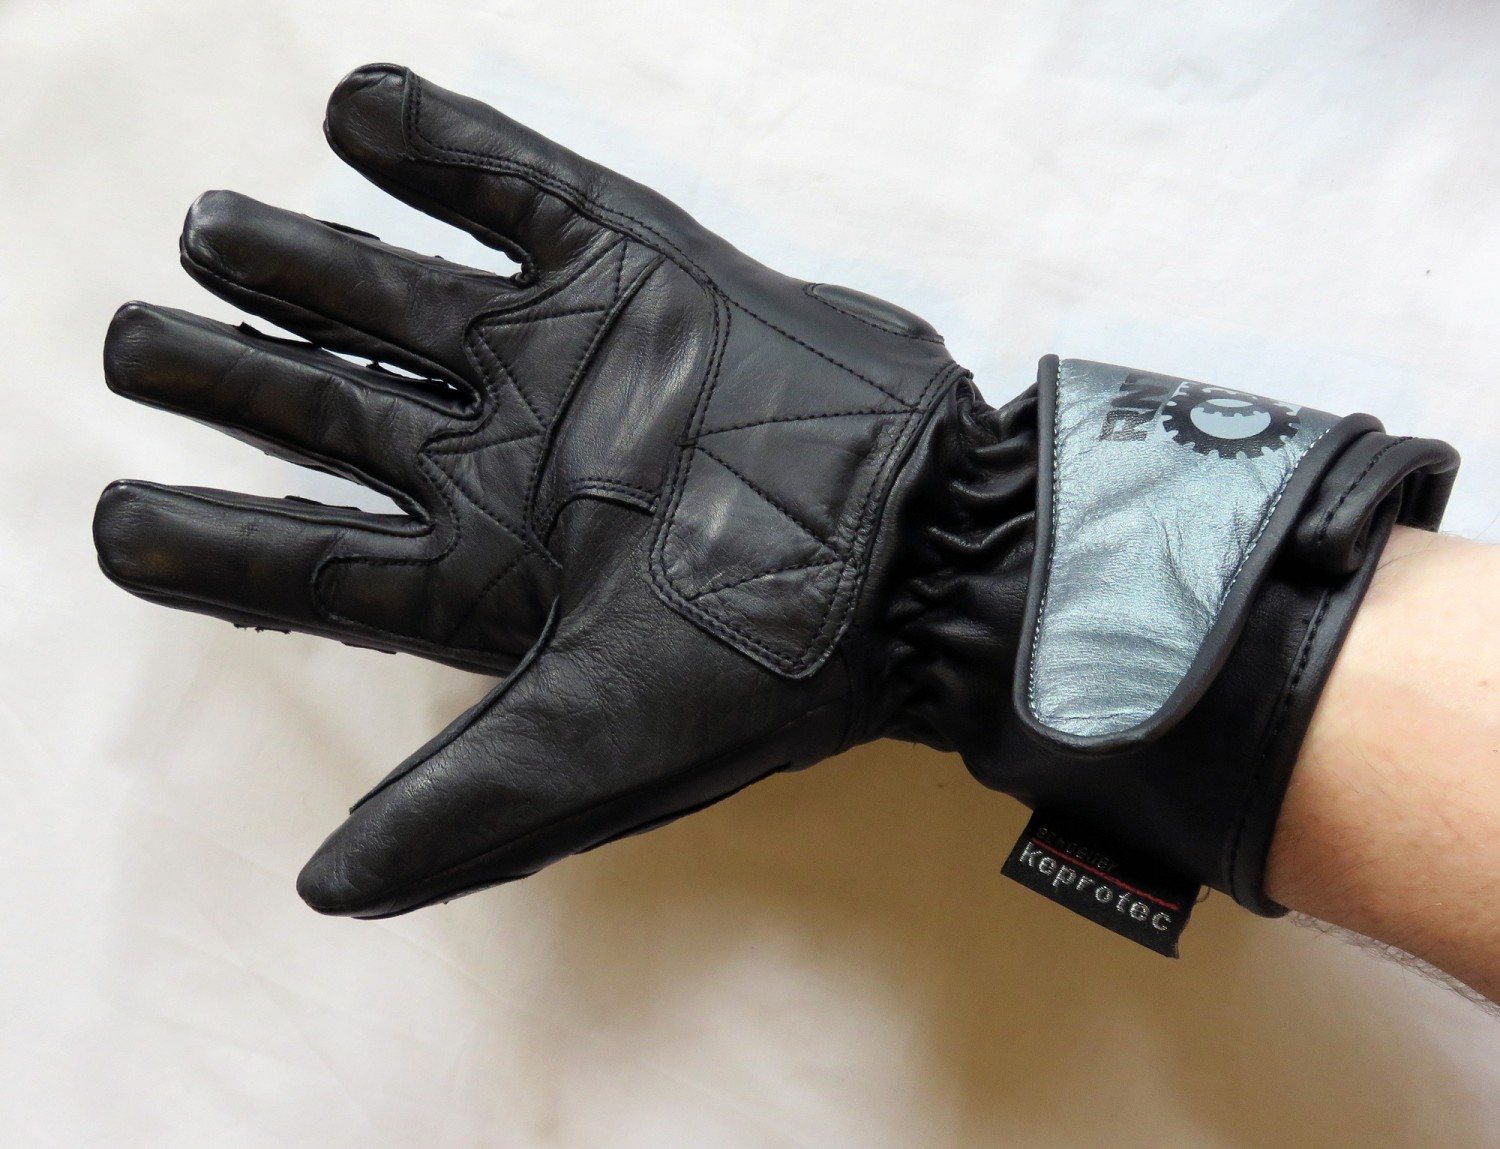 Motorcycle gloves review 2016 - Feb 2016